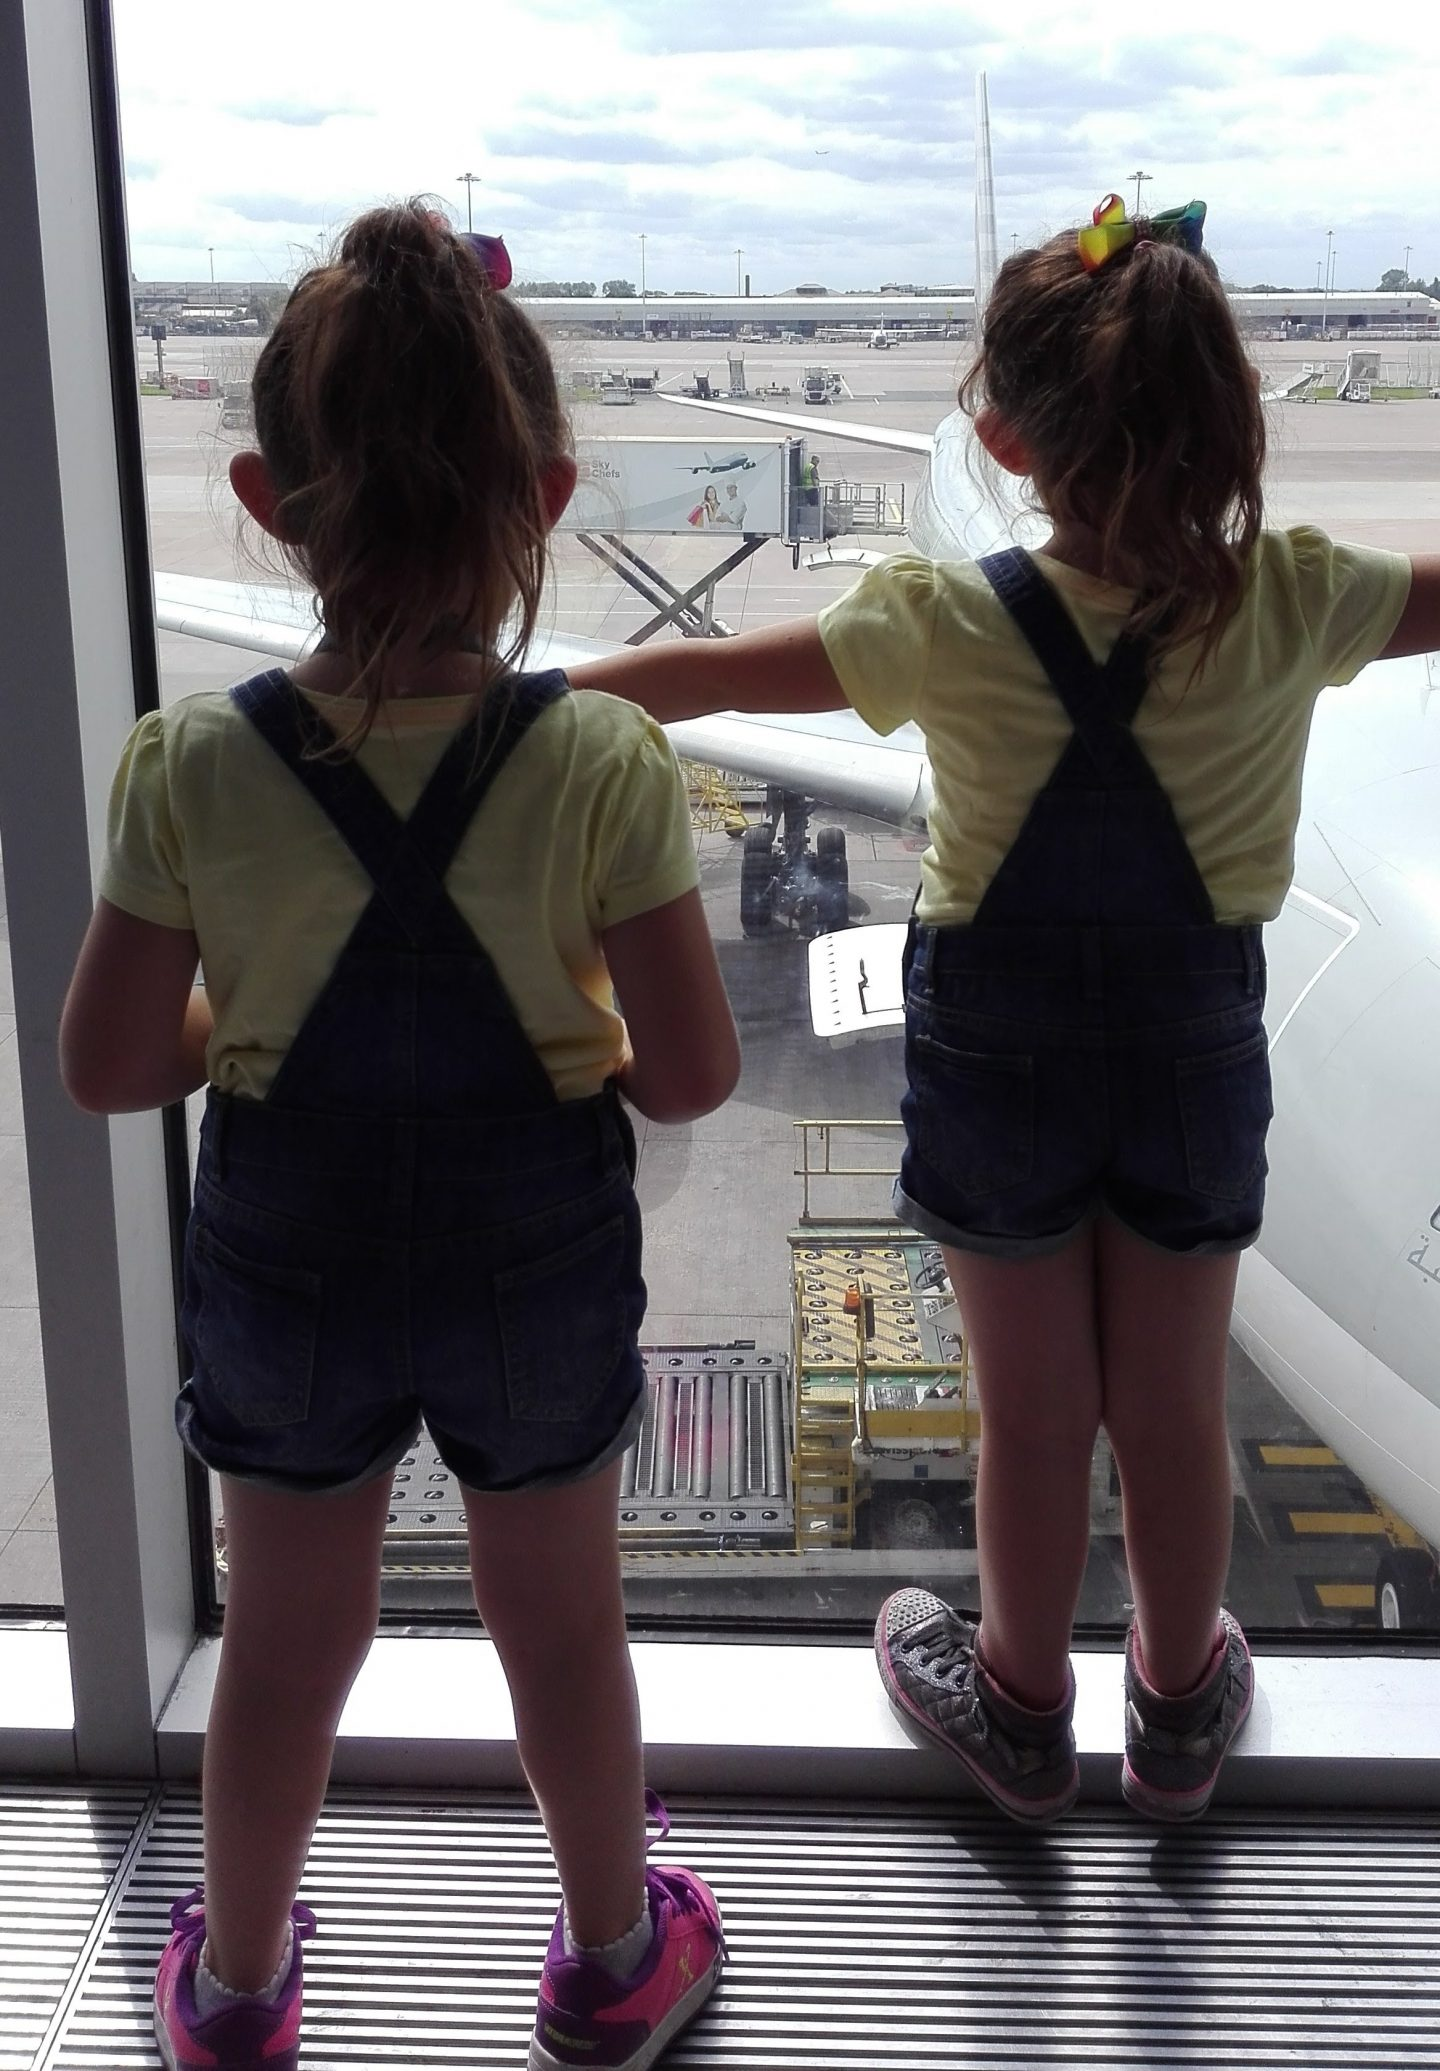 Should You Dress Your Twins The Same? Here's Why I Think You Shouldn't